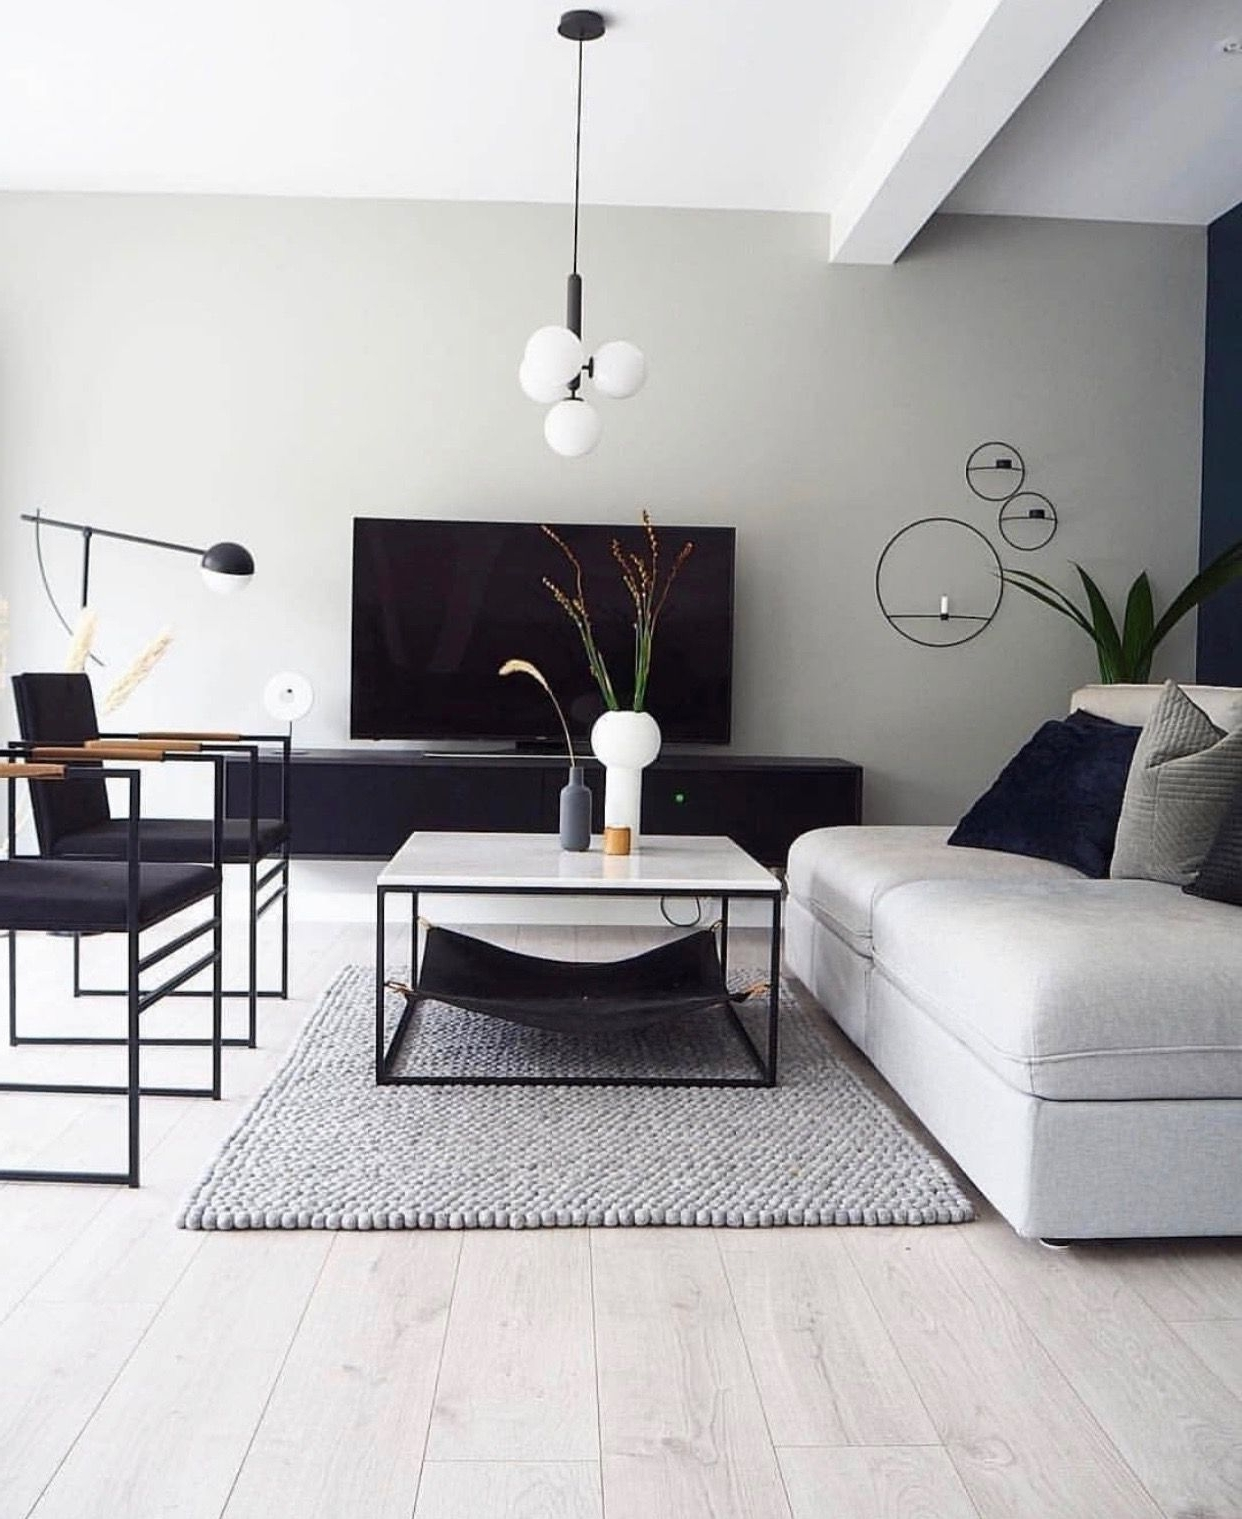 Beautiful Monochrome Living Room! The Clean Lines And Monochrome Living Room Decorating